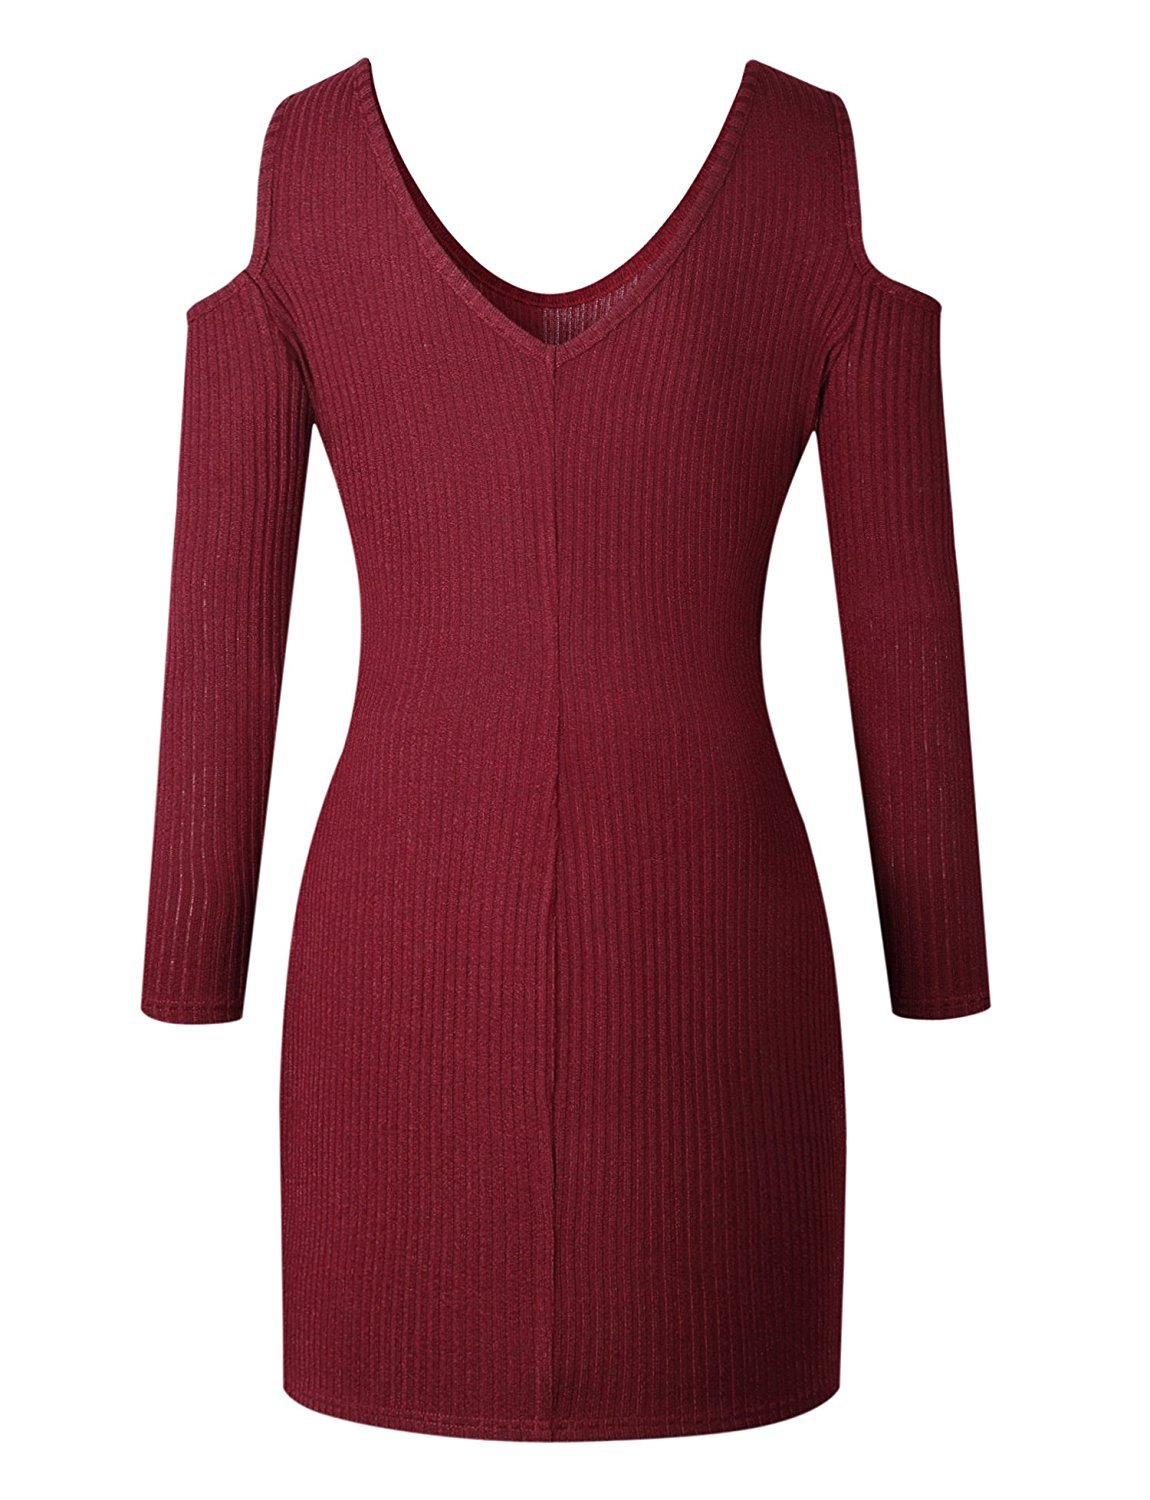 Ninimour Womens Sexy Knitted Cold Shoulder Bodycon Mini Dress Wine Red XL